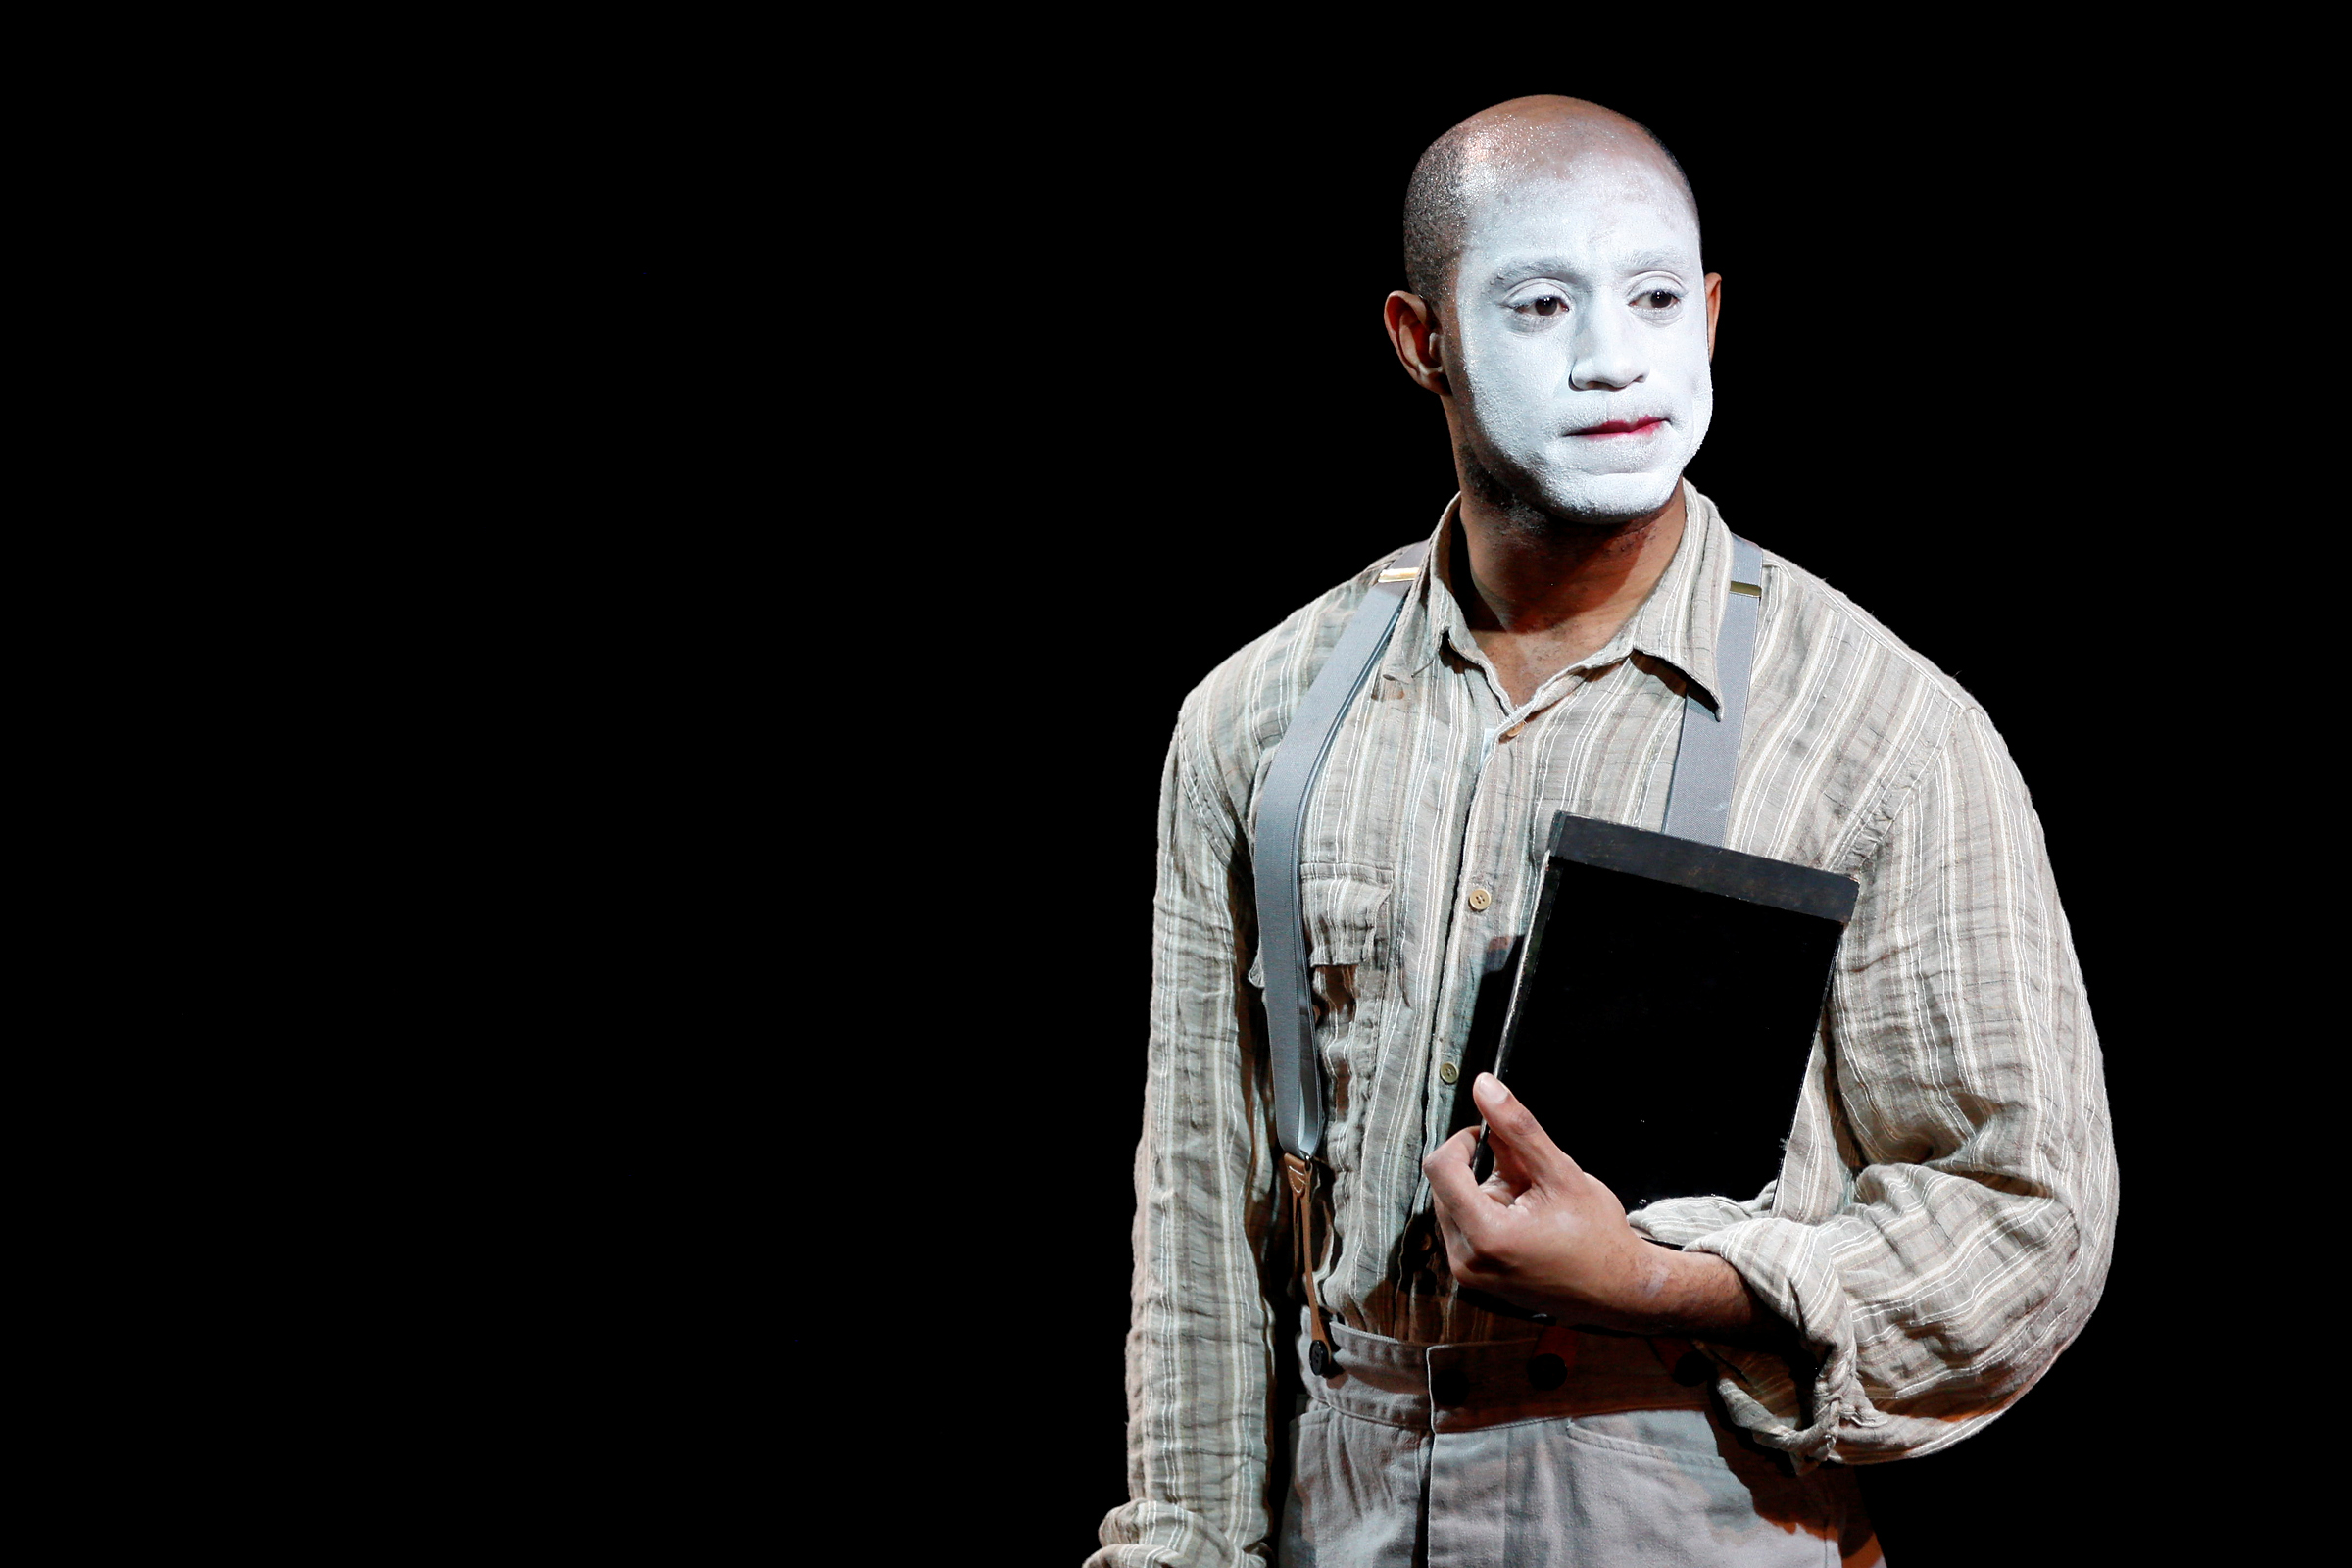 Actor Lamar Legend plays playwright B J J, who then dons white face and stars as George.